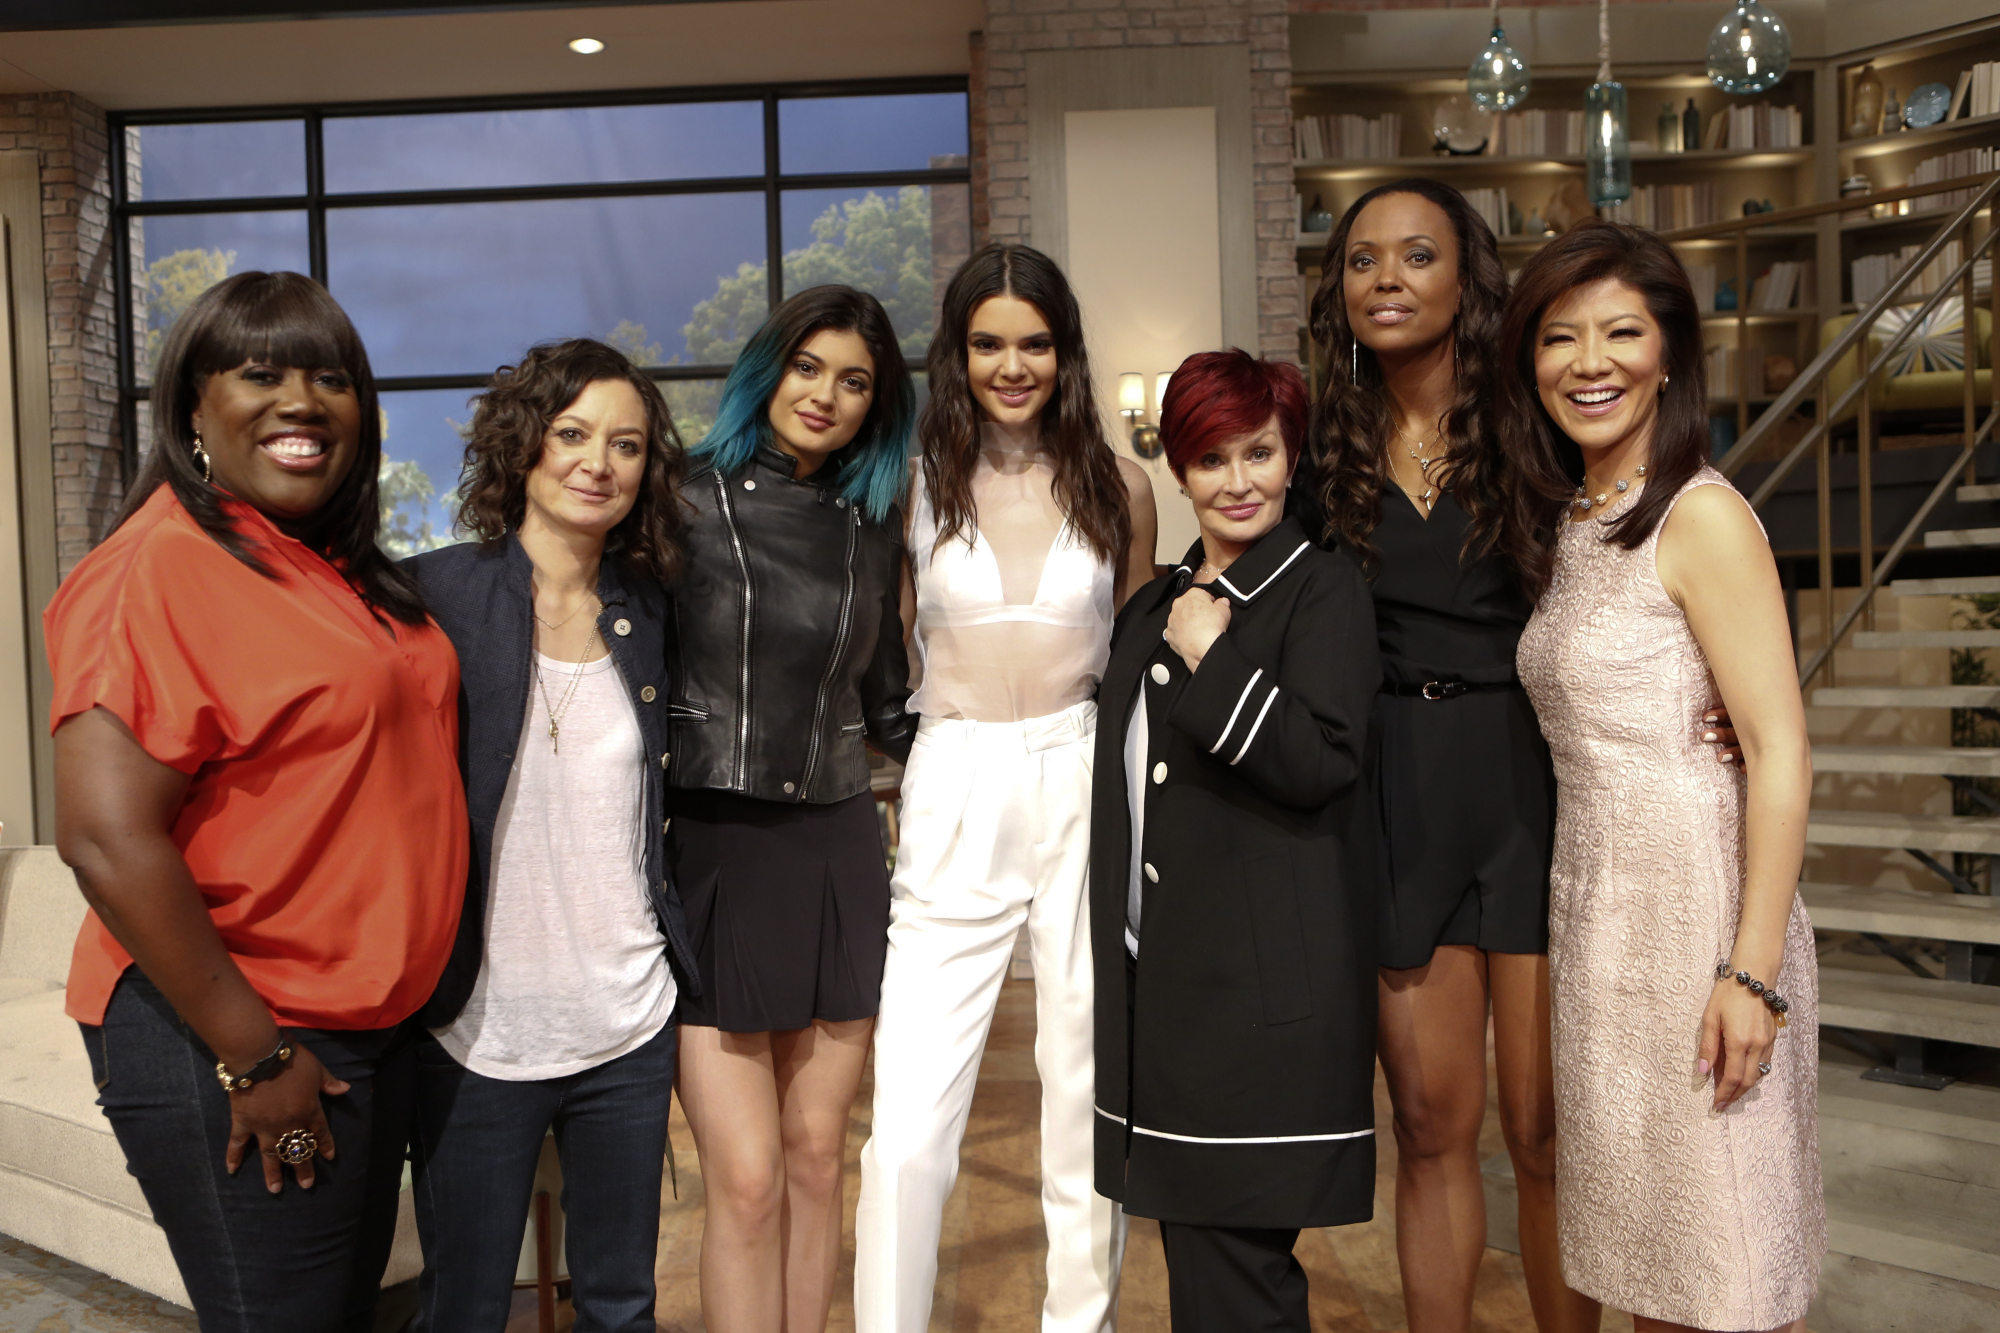 The Ladies With Kendall and Kylie Jenner.